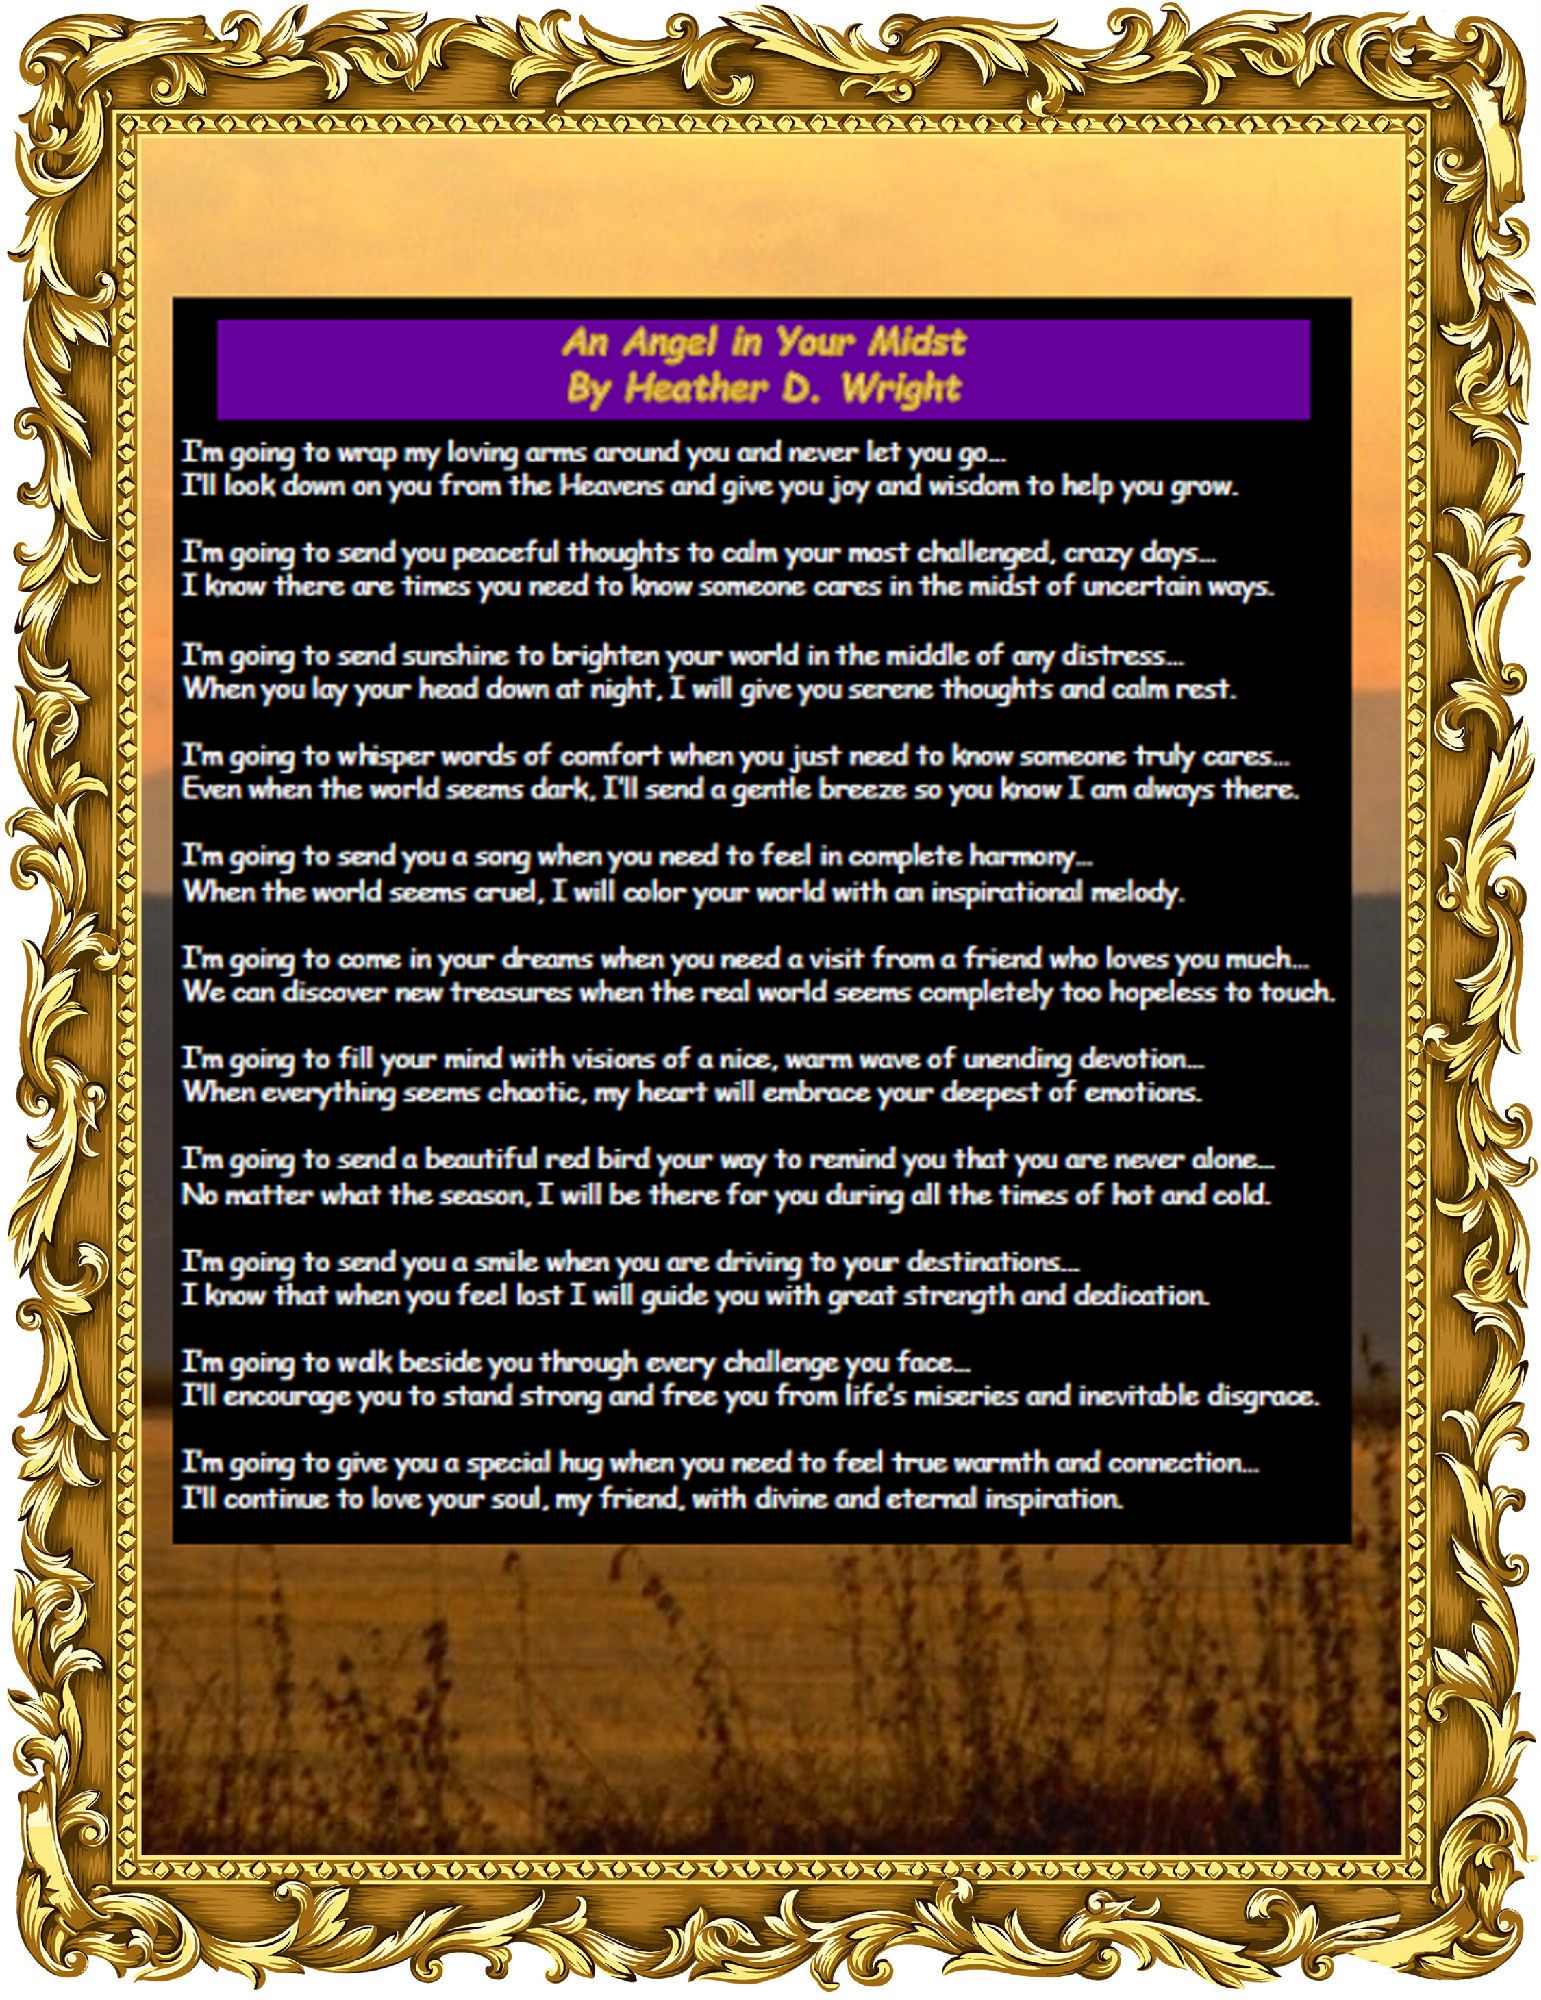 An Angel in Your Midst - Printable Digital Download